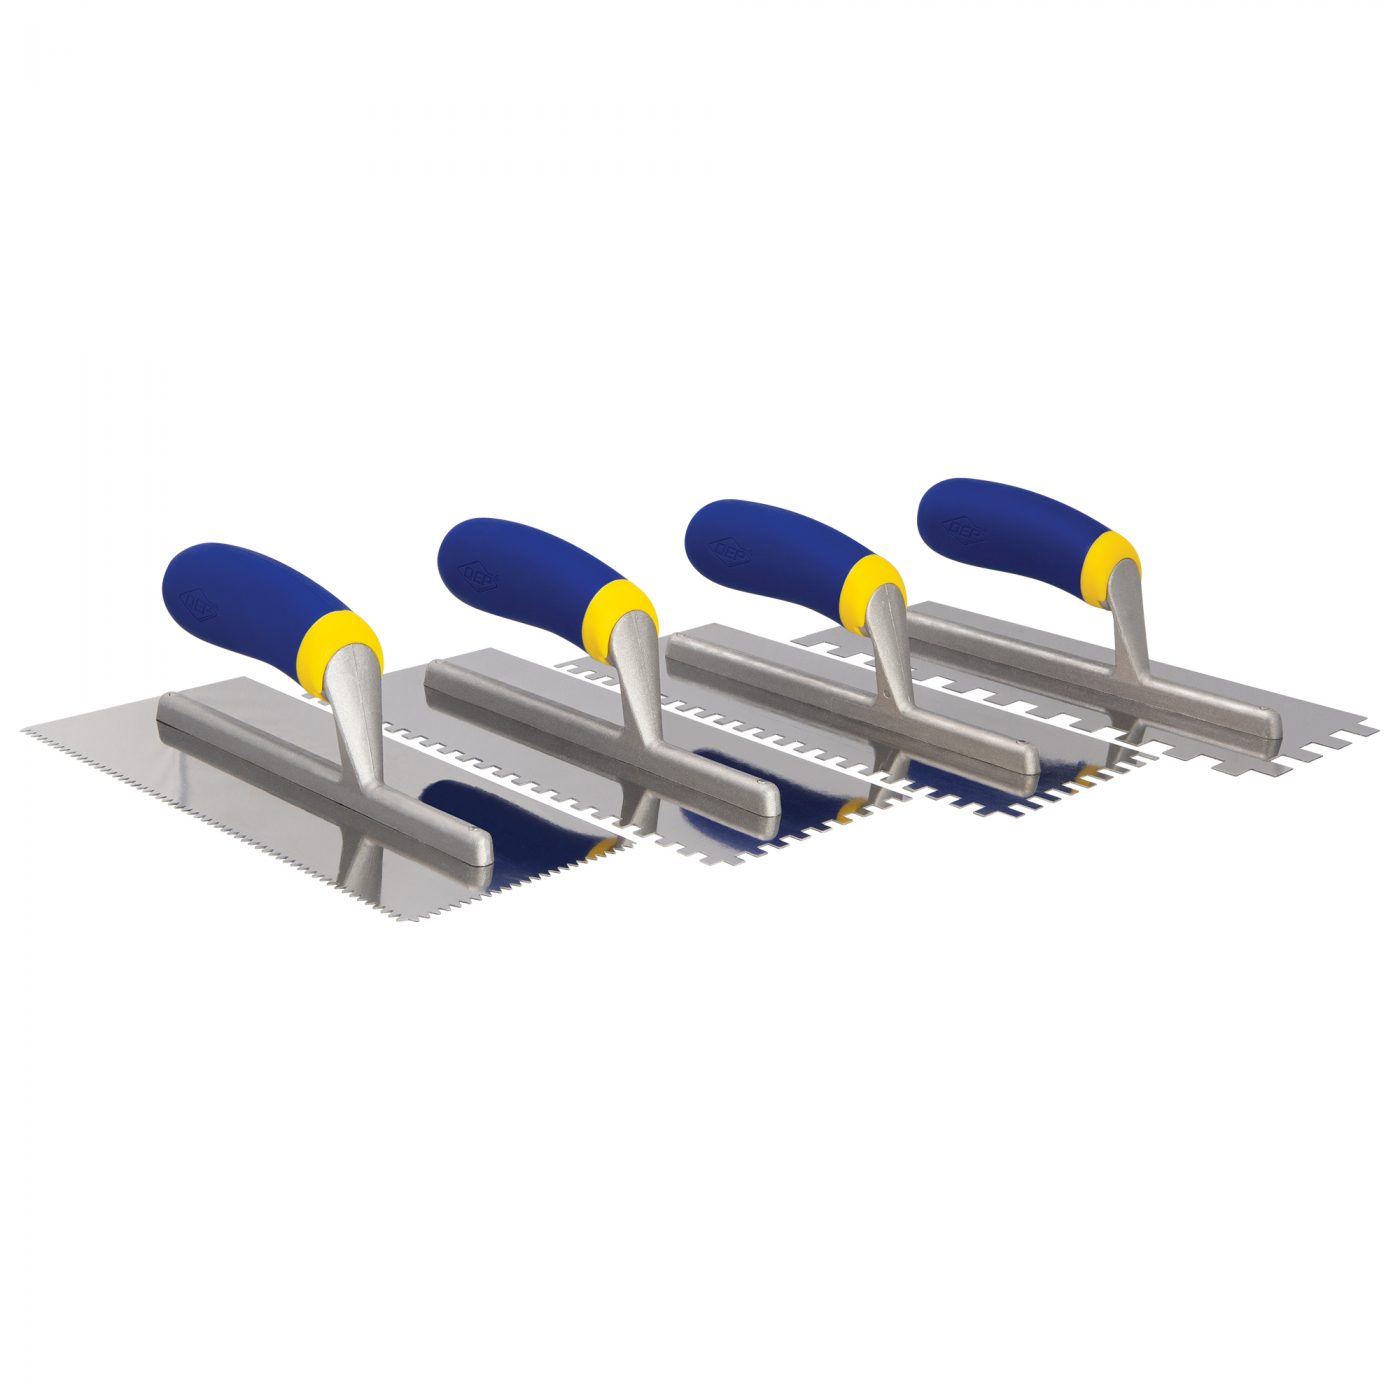 Comfort Grip Stainless Steel Notched Trowels